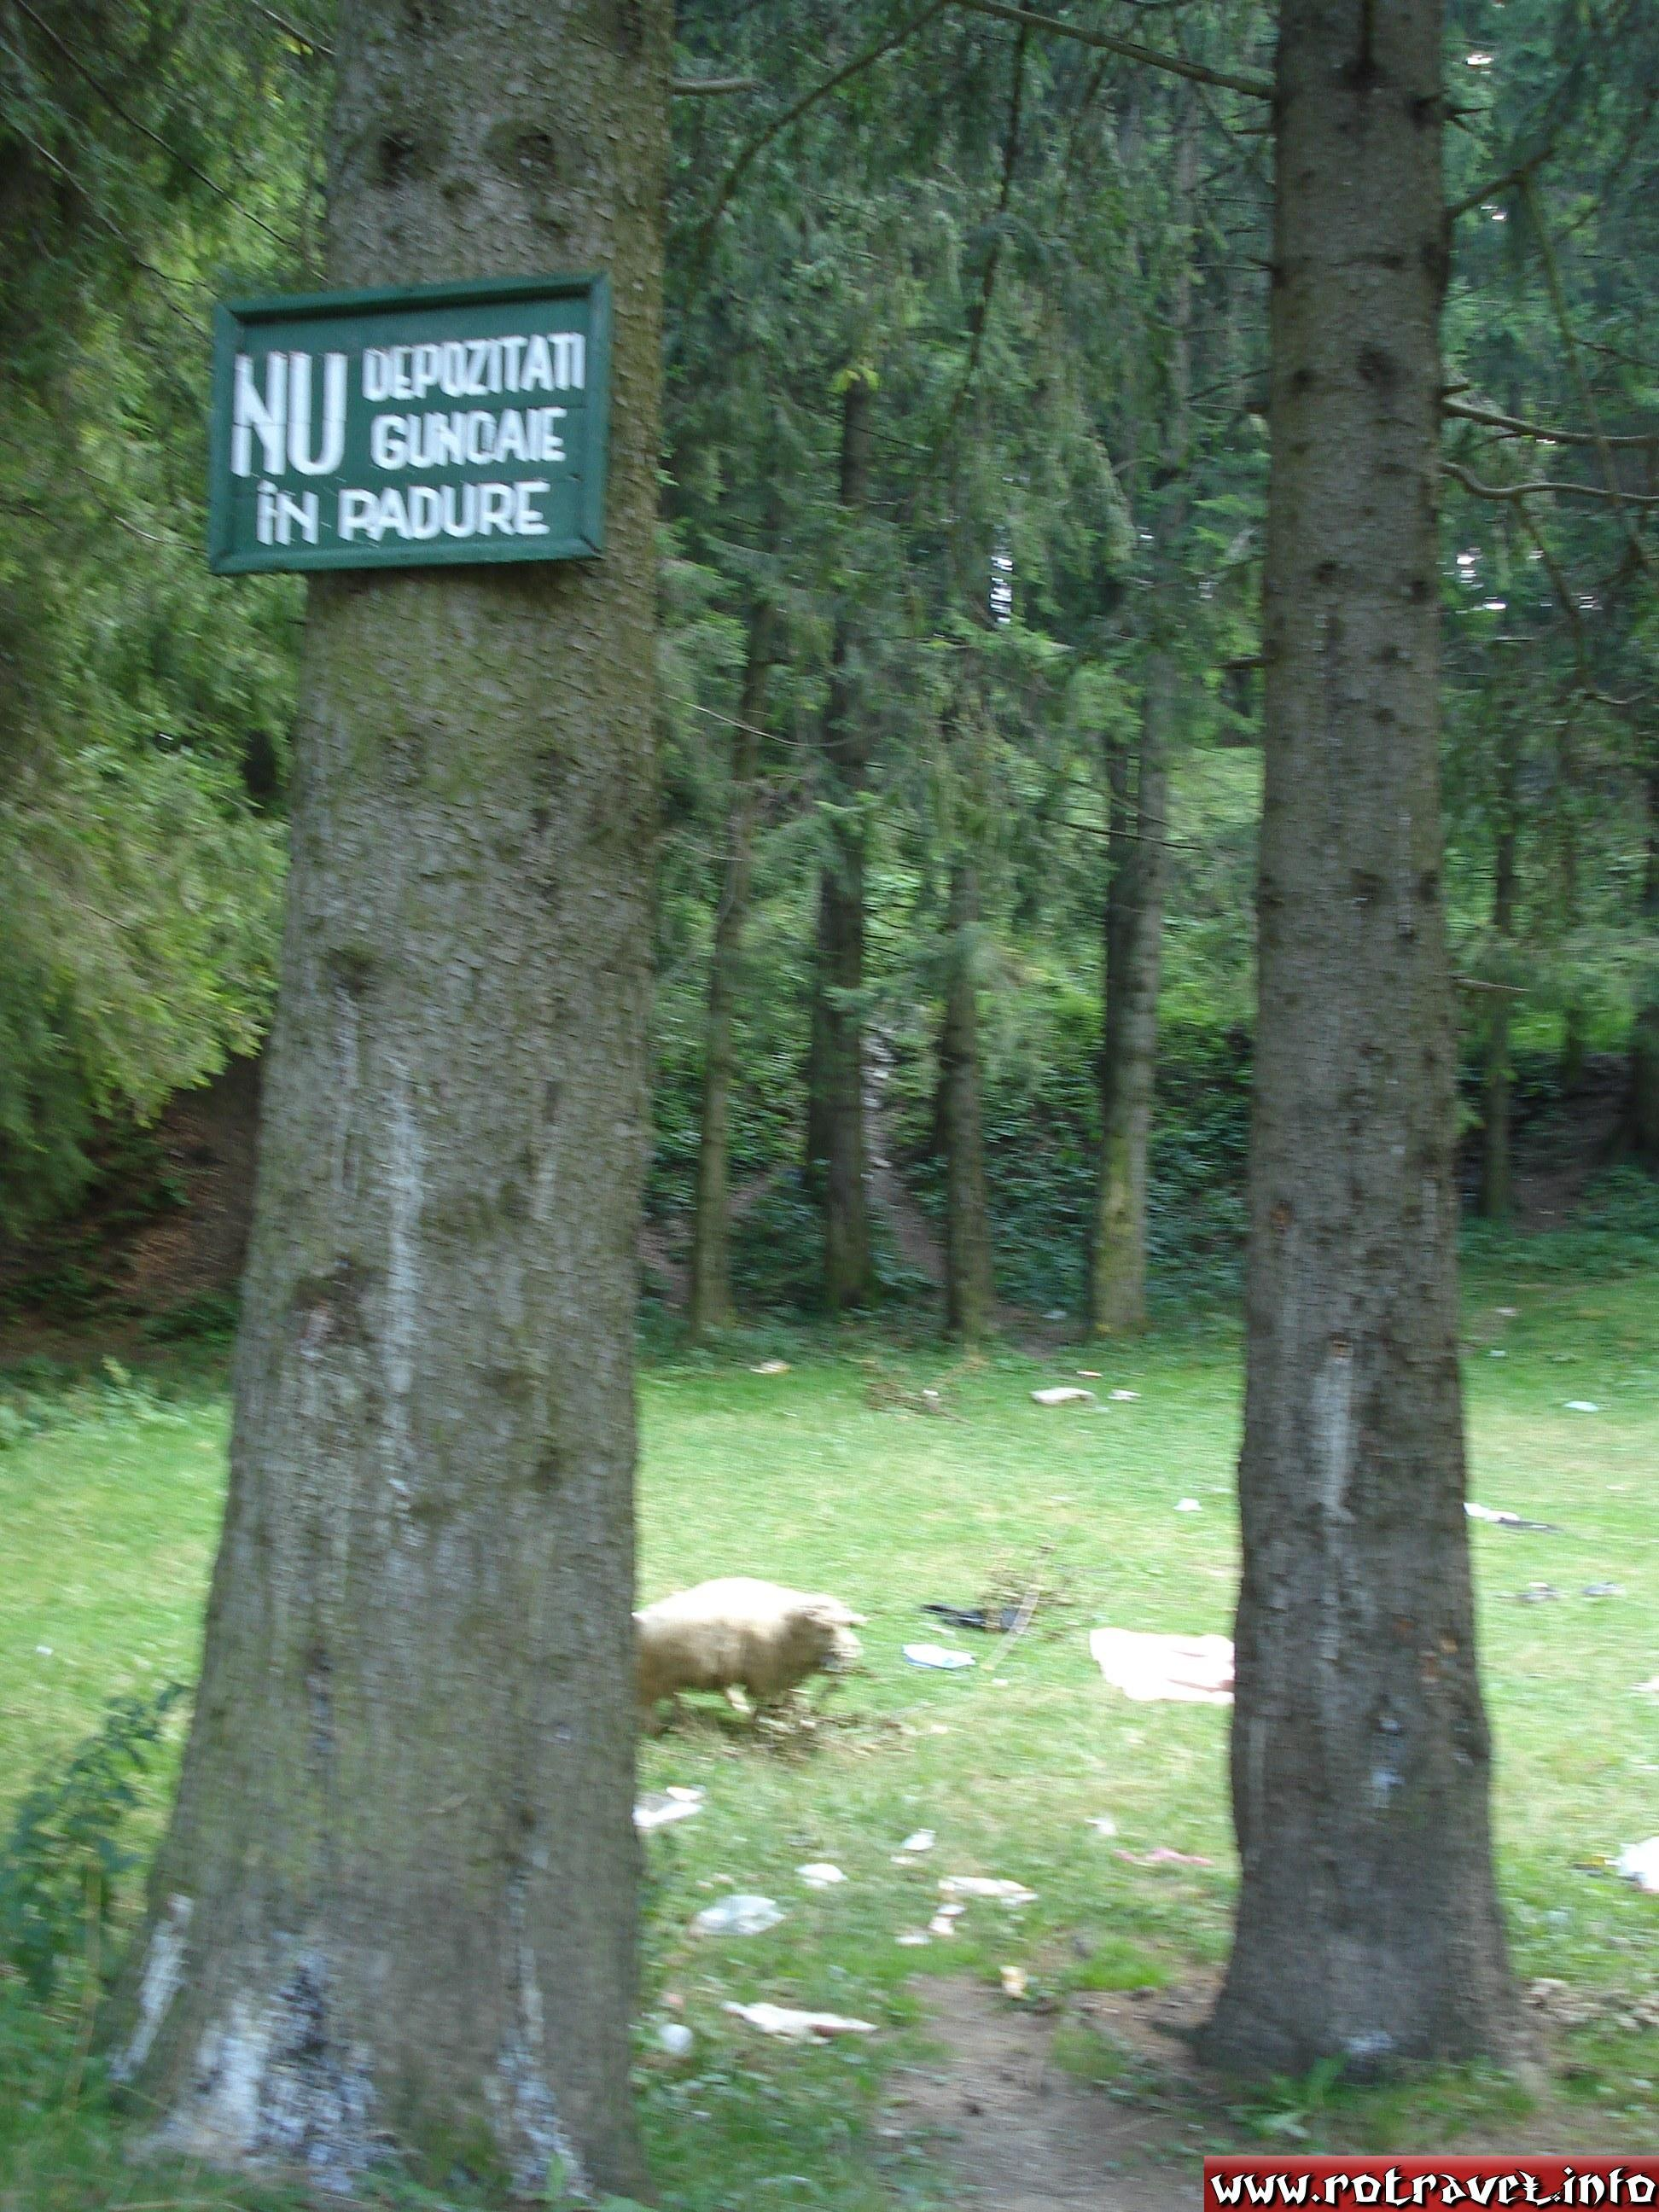 How to protect better the Nature (Do not throw the rubbish in the forest!).Unfortunately, this message is respected by all  the tourists.